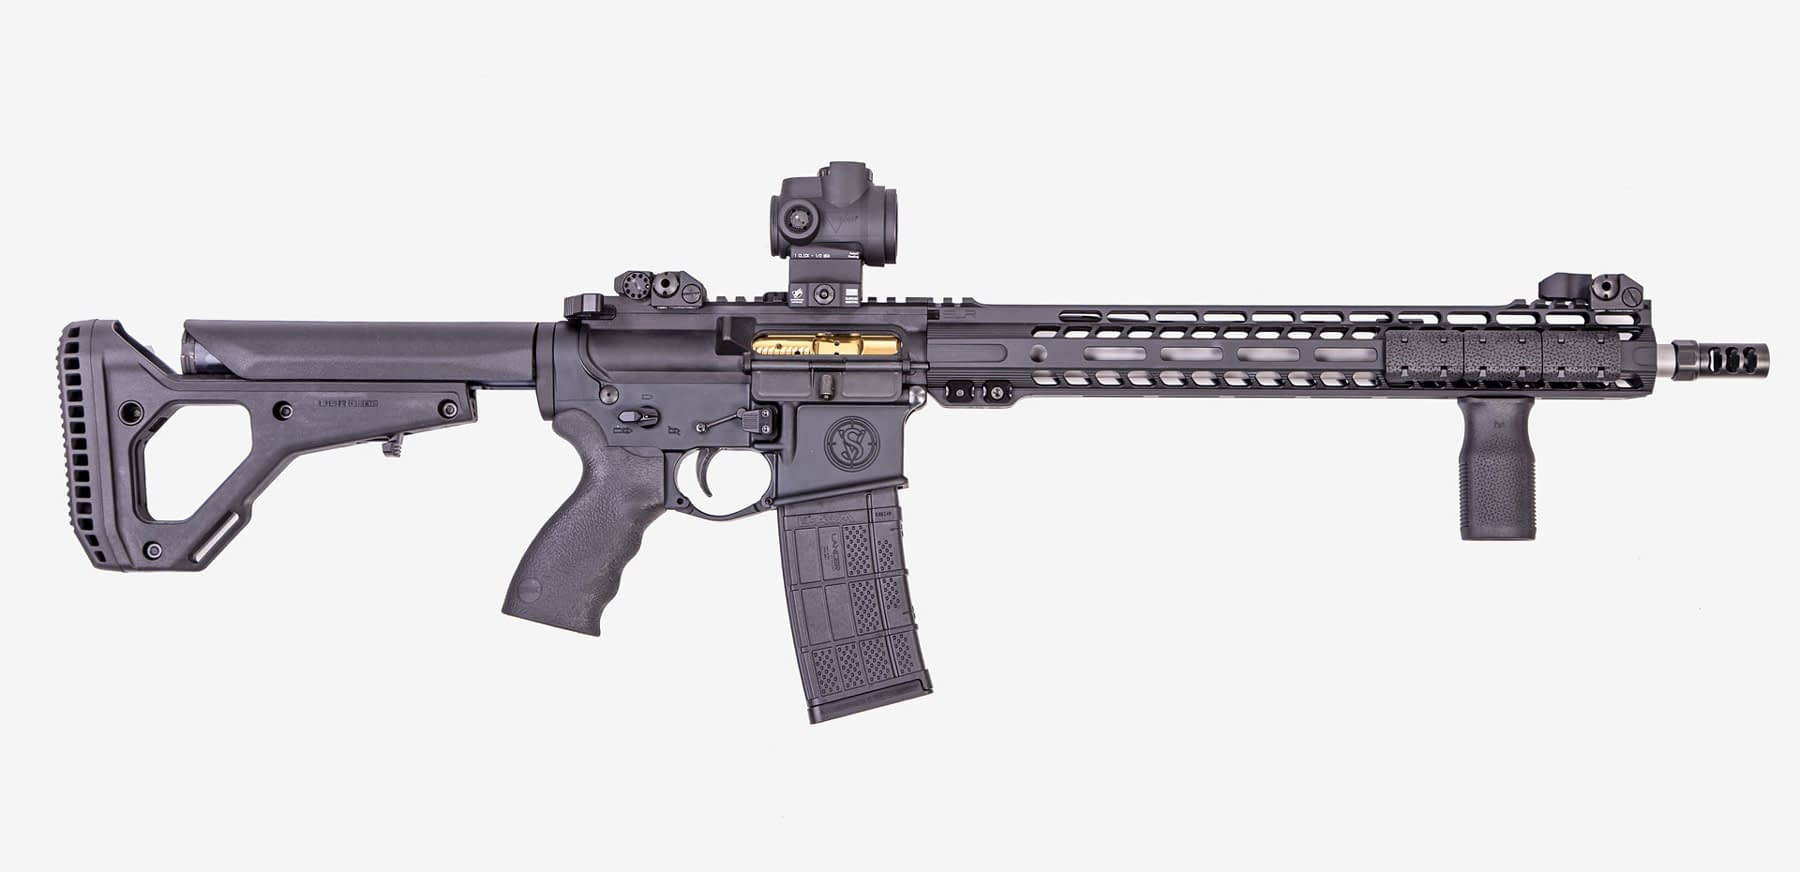 ar rifle sv-16 side profile, front of rifle is pointing to right, right side can be seen